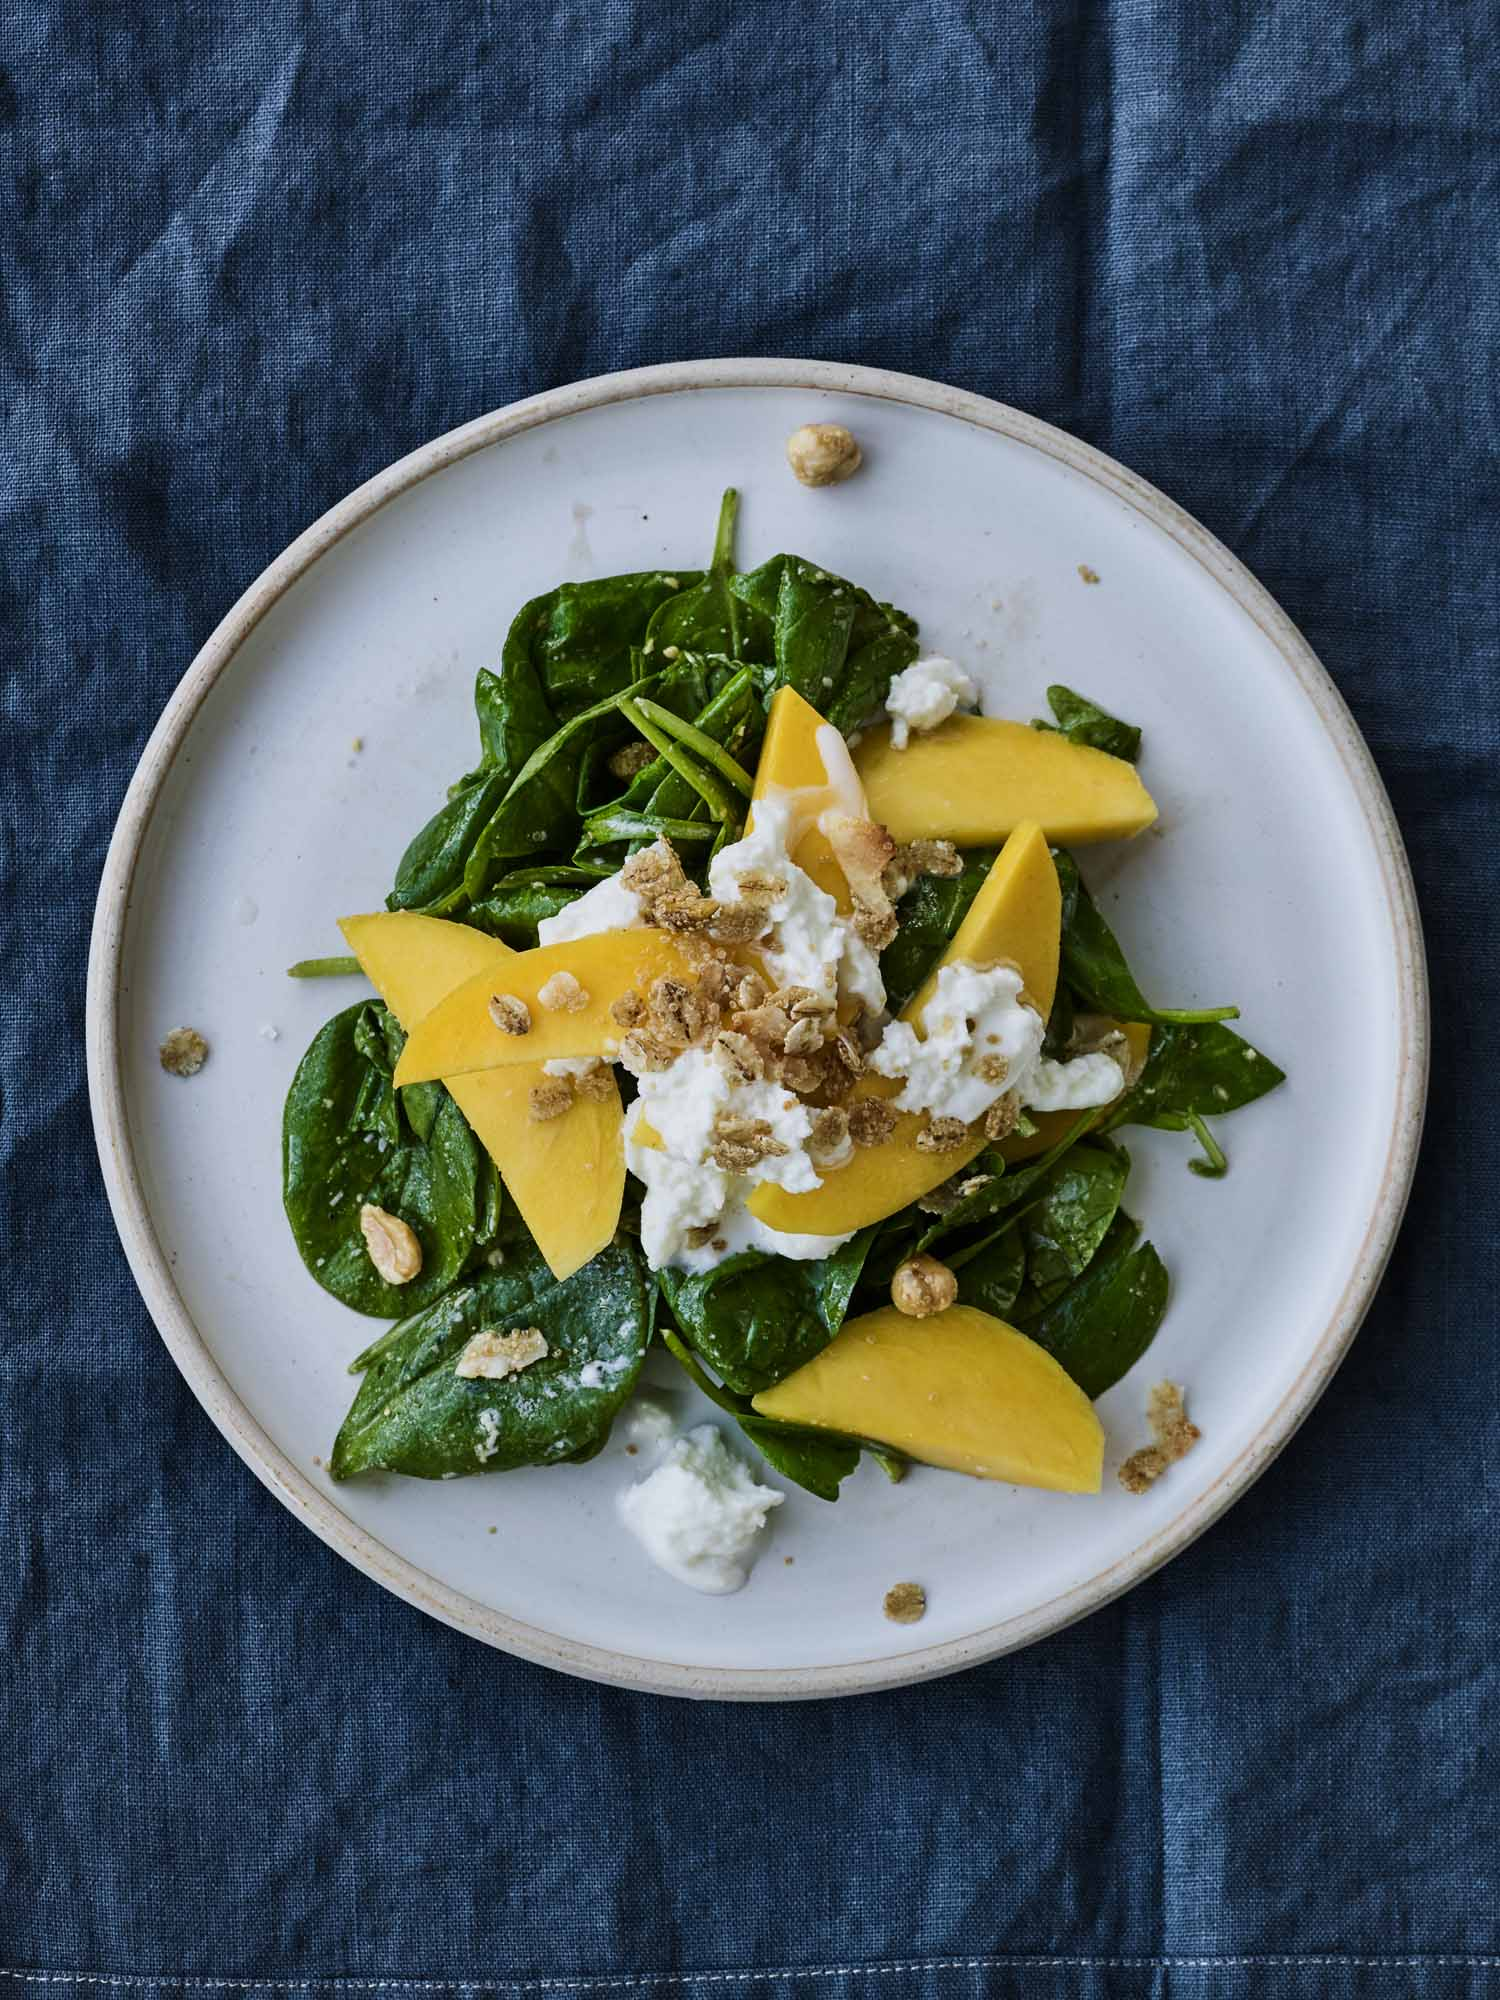 Spinach Salad with Burrata, Mango and Granola